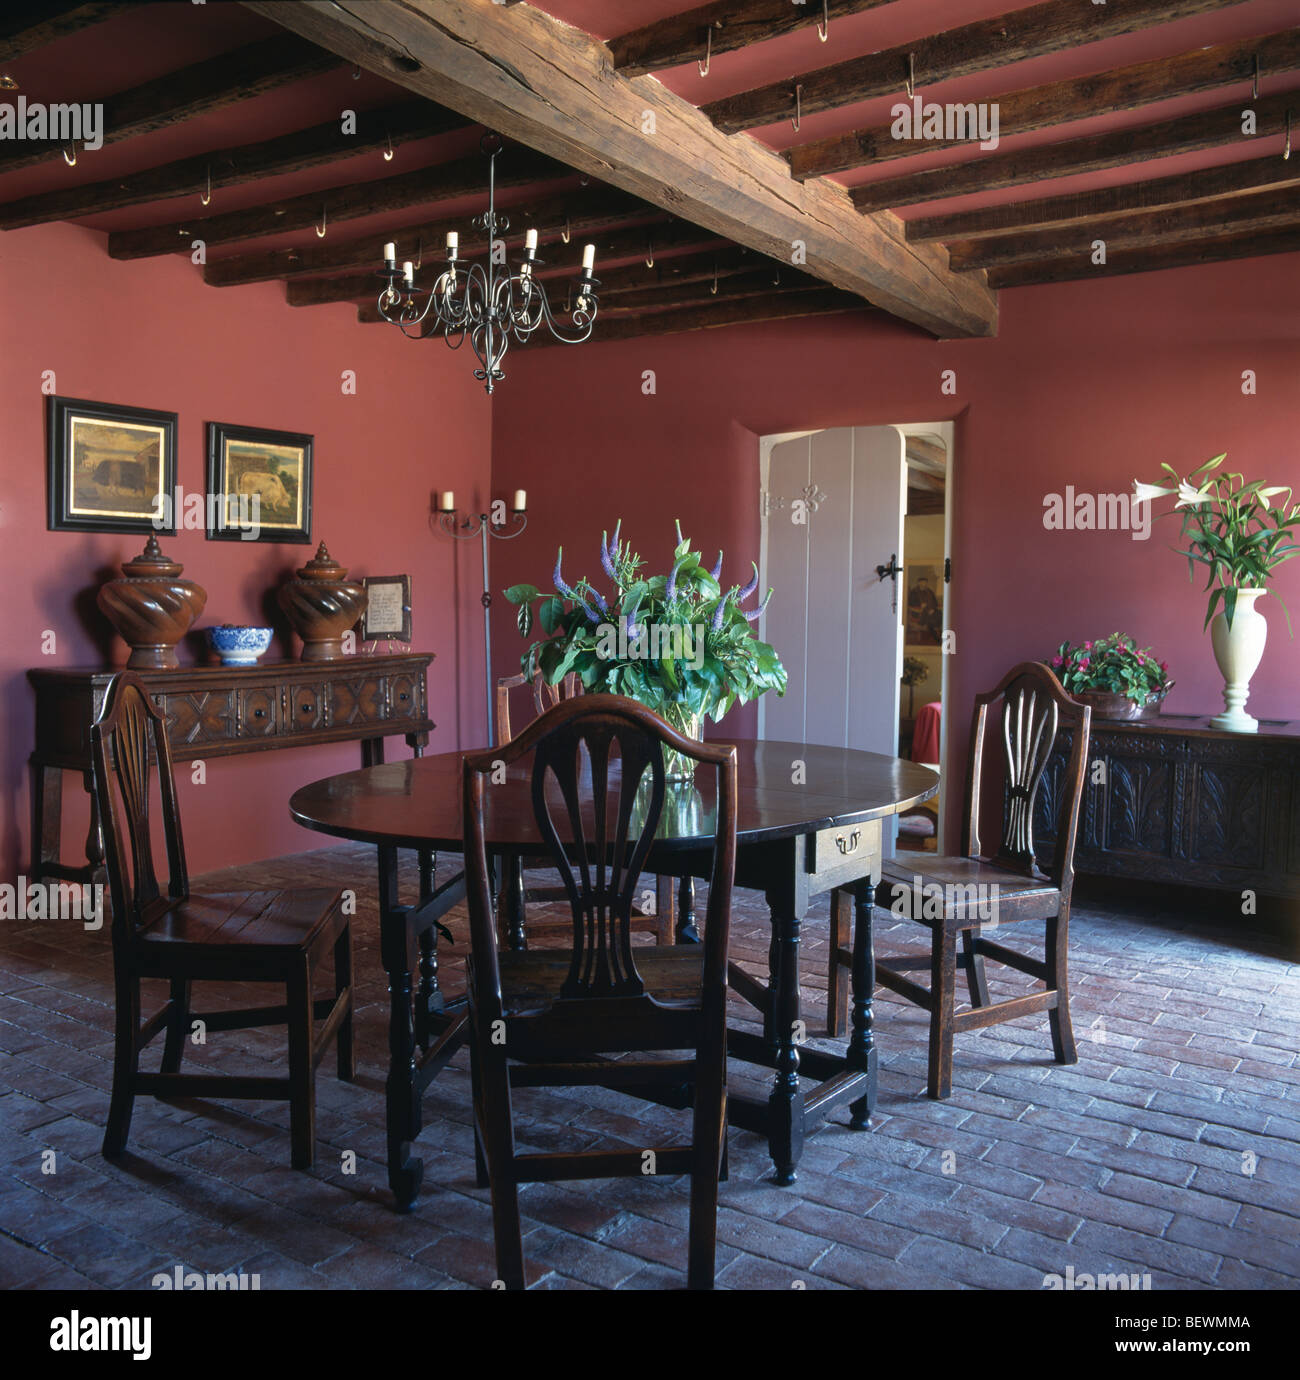 Antique oak table and chairs in red country dining room with brick antique oak table and chairs in red country dining room with brick flooring and rustic wooden ceiling beams dzzzfo